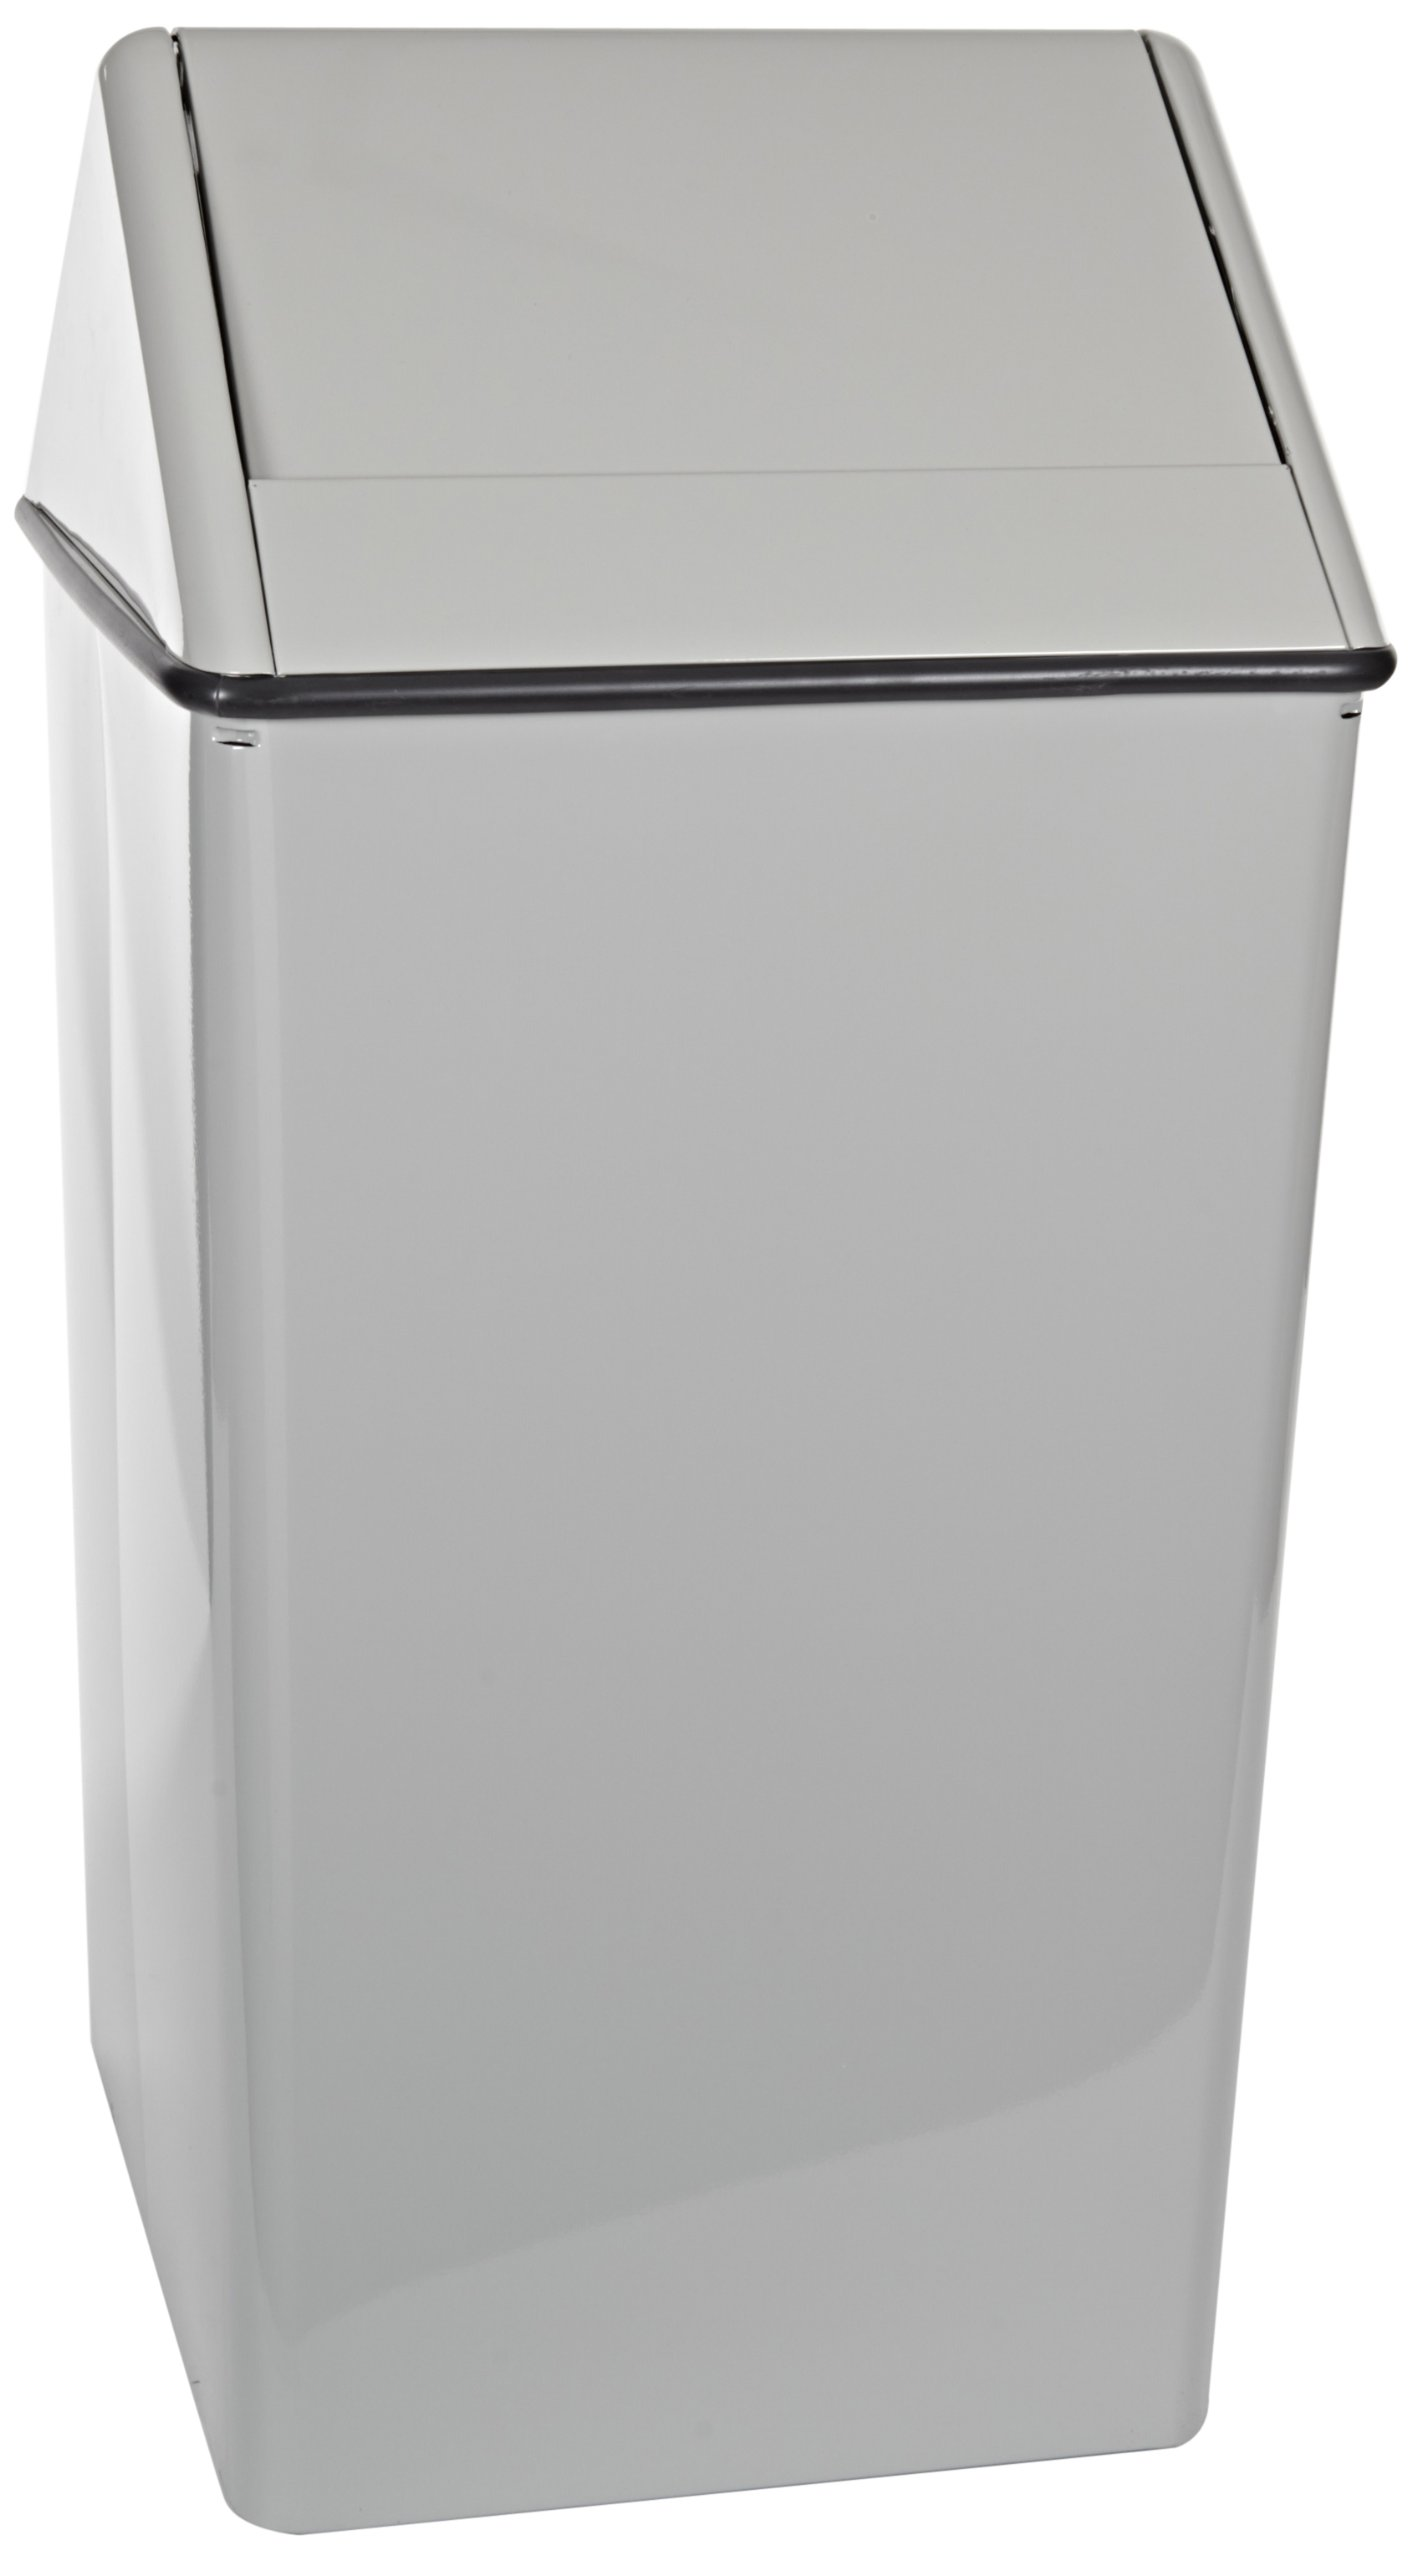 Witt Industries 1411HTSL Stainless Steel 21-Gallon Waste Watcher Hamper and Swing Top Receptacle, Square, 15'' Width x 15'' Depth x 38'' Height, Slate by Witt Industries